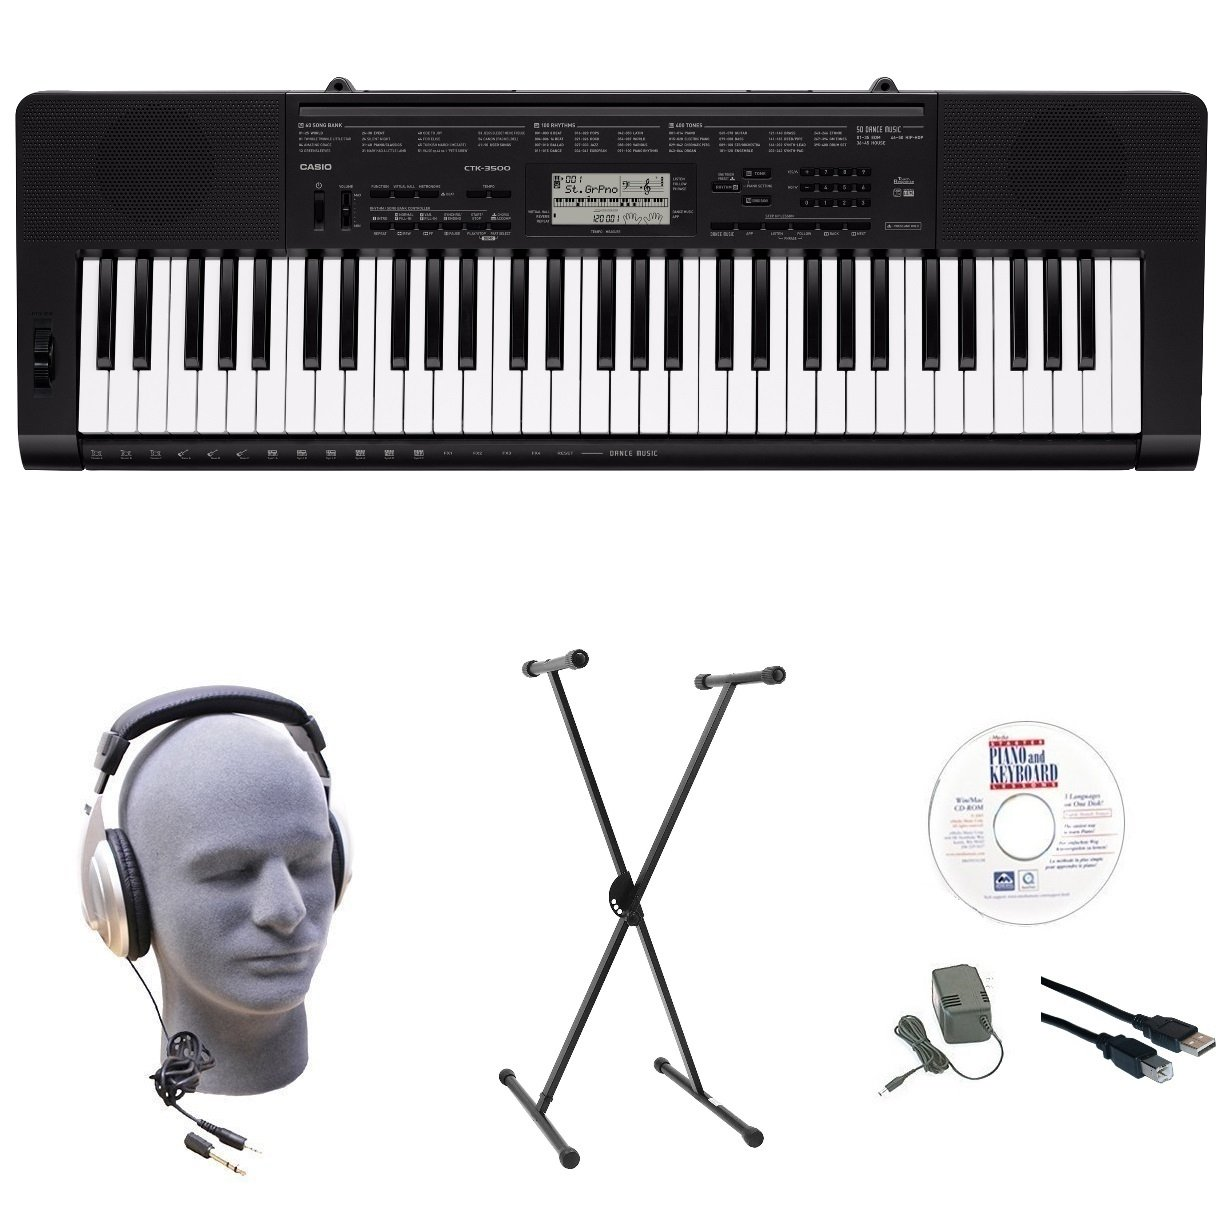 Casio CTK-3500 EPA 61-Key Premium Keyboard Pack with Stand, Headphones, Power Supply, USB Cable & eMedia Instructional Software by Casio